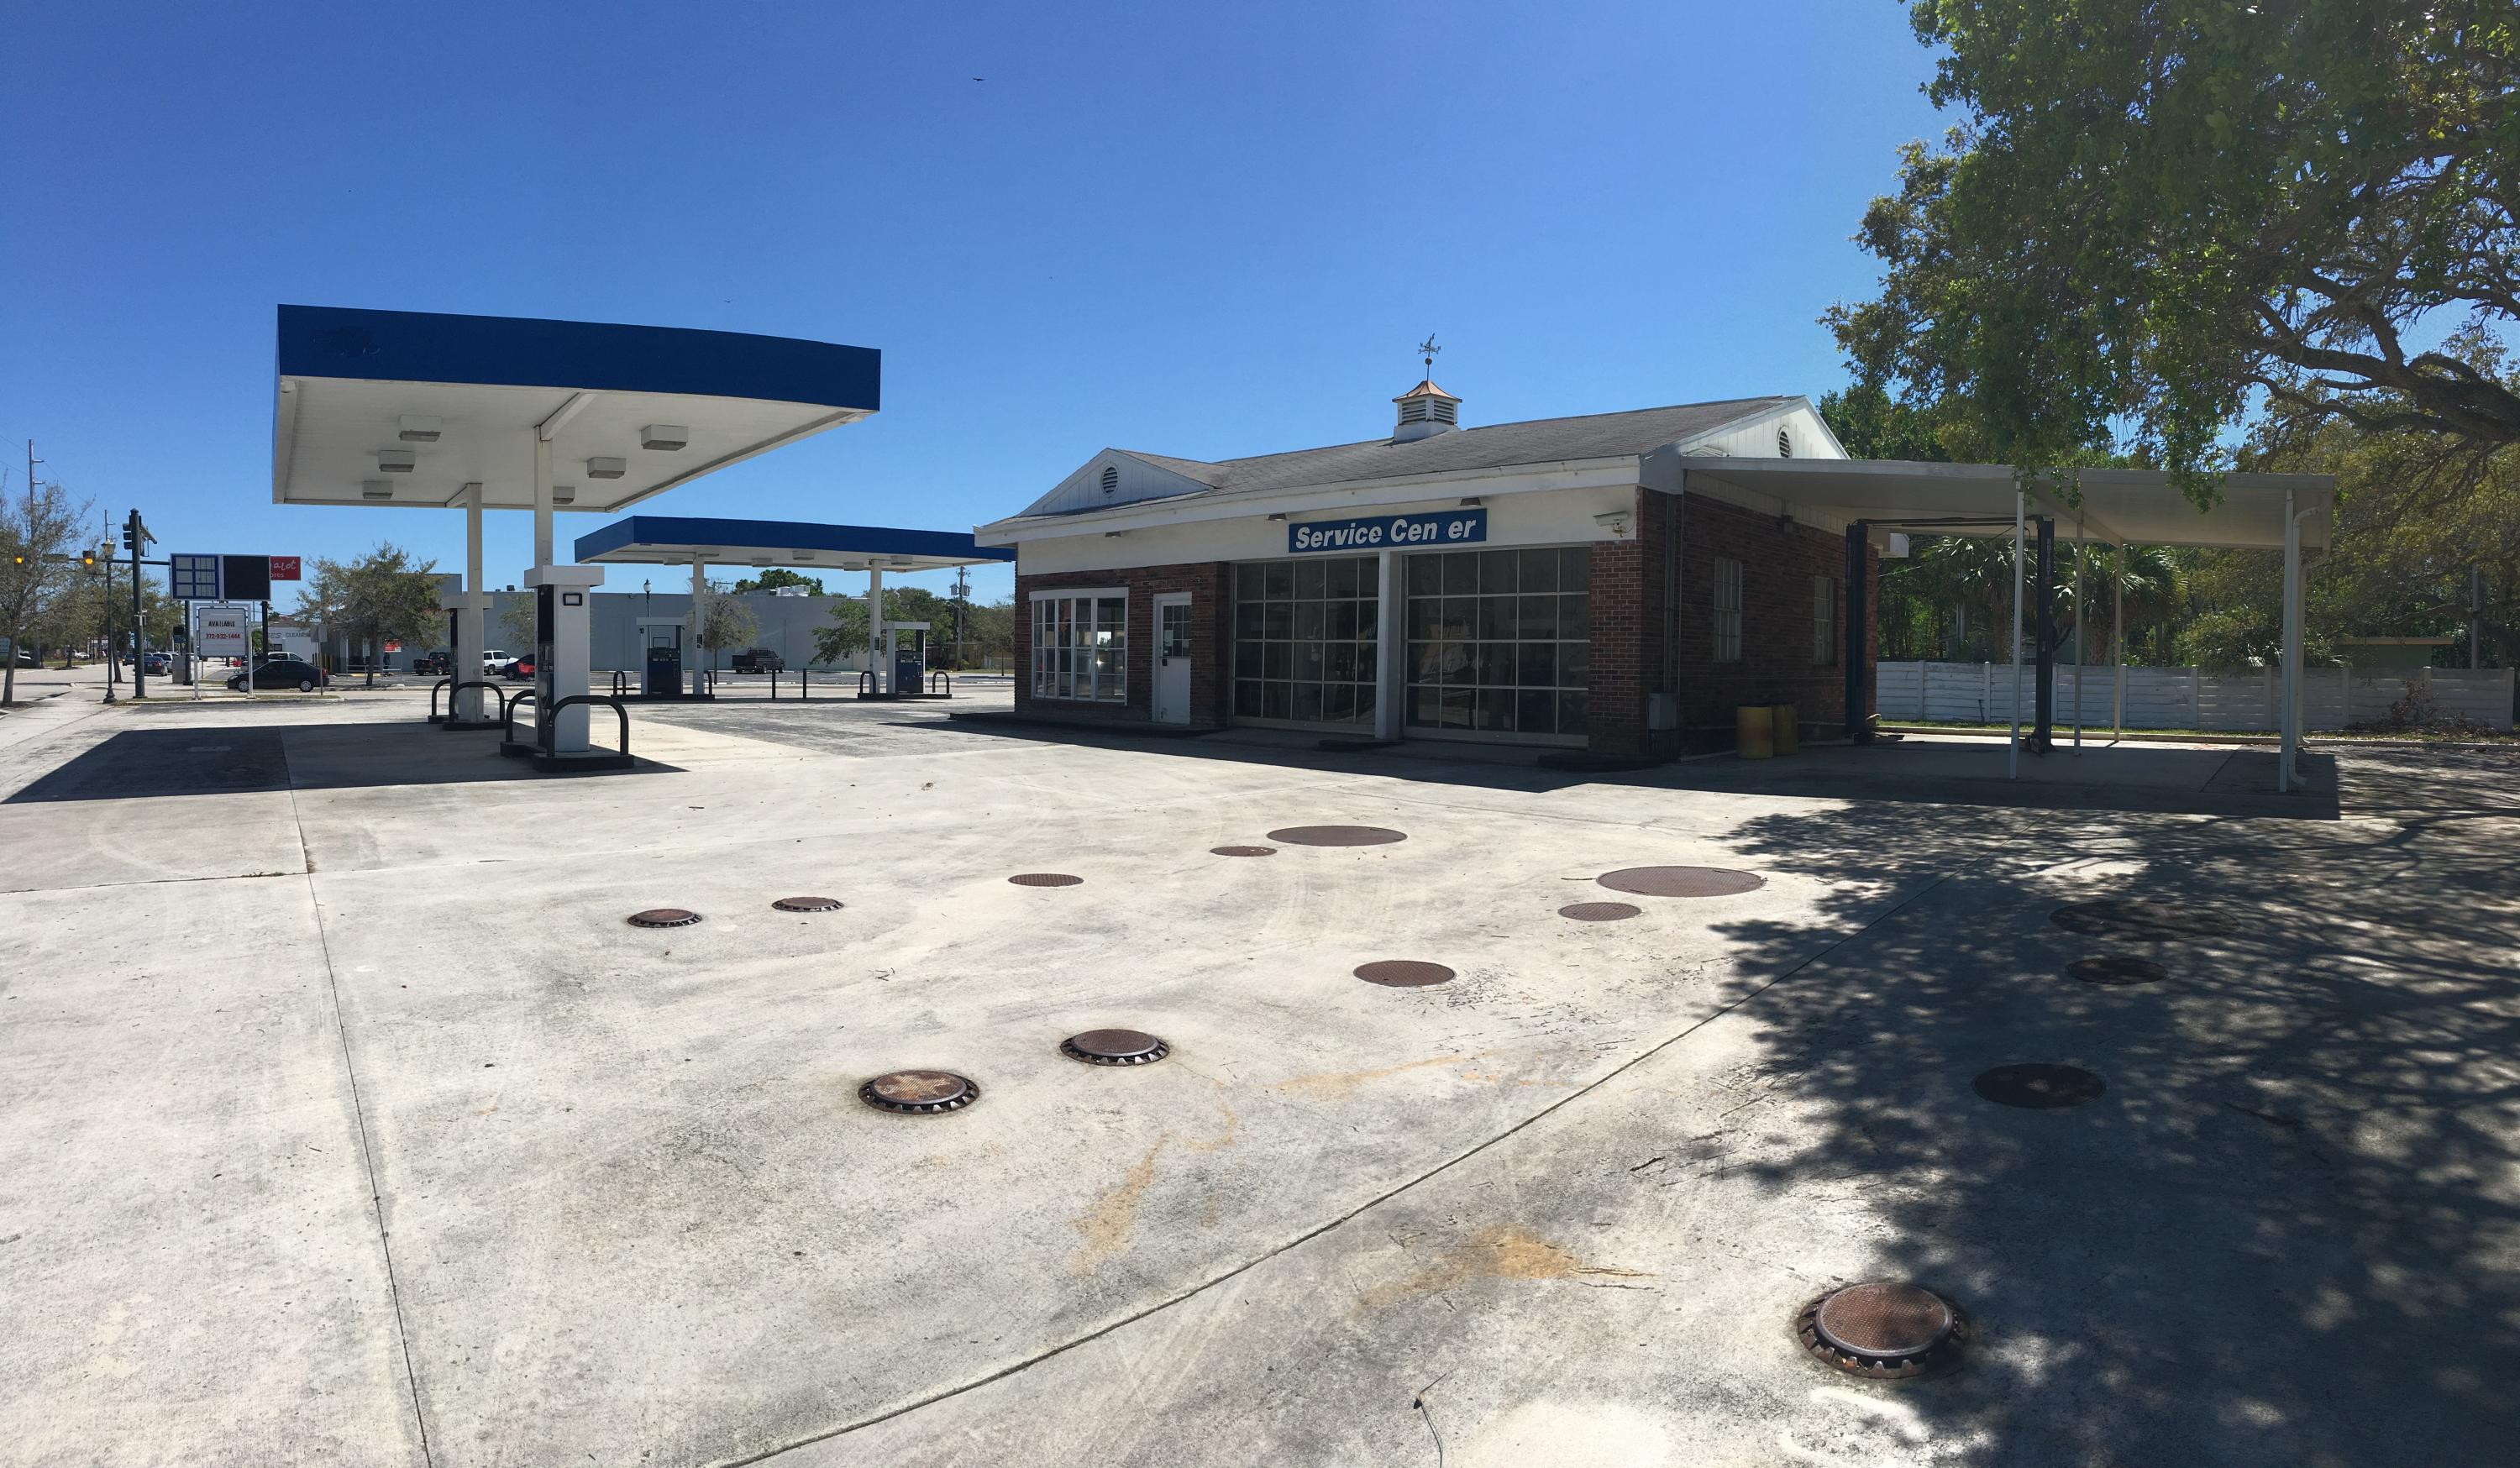 701 Delaware, Fort Pierce, Florida 34950